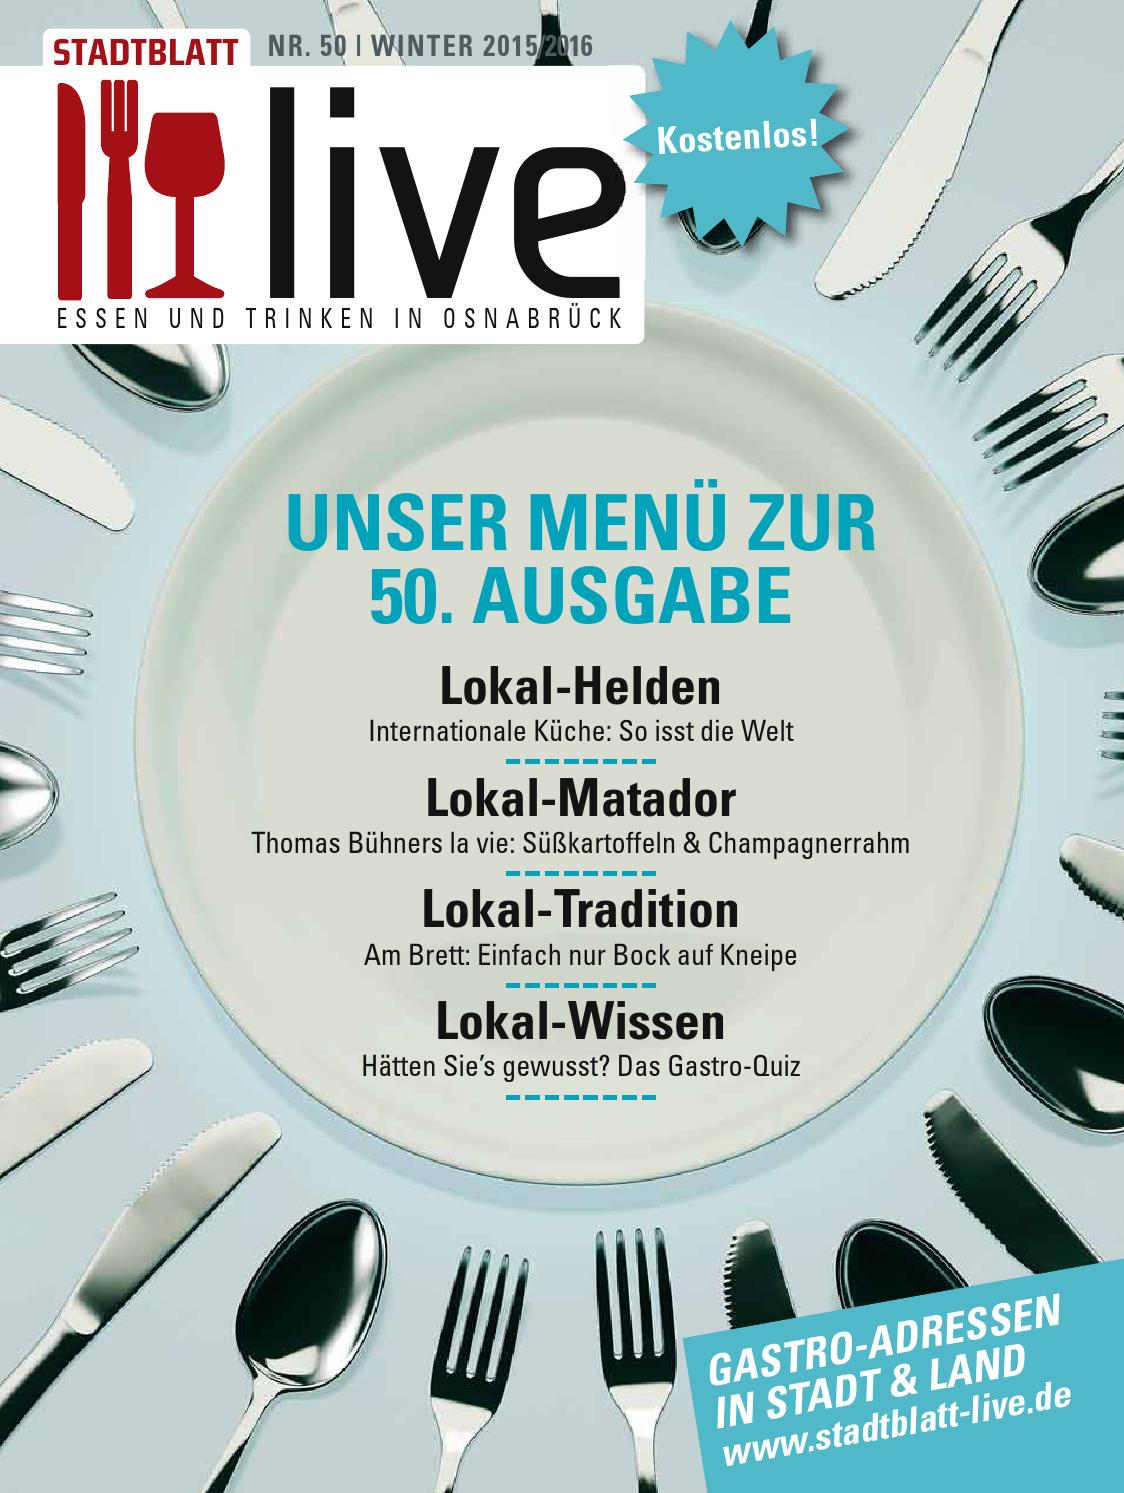 STADTBLATT live winter 2015/2016 by bvw werbeagentur - issuu